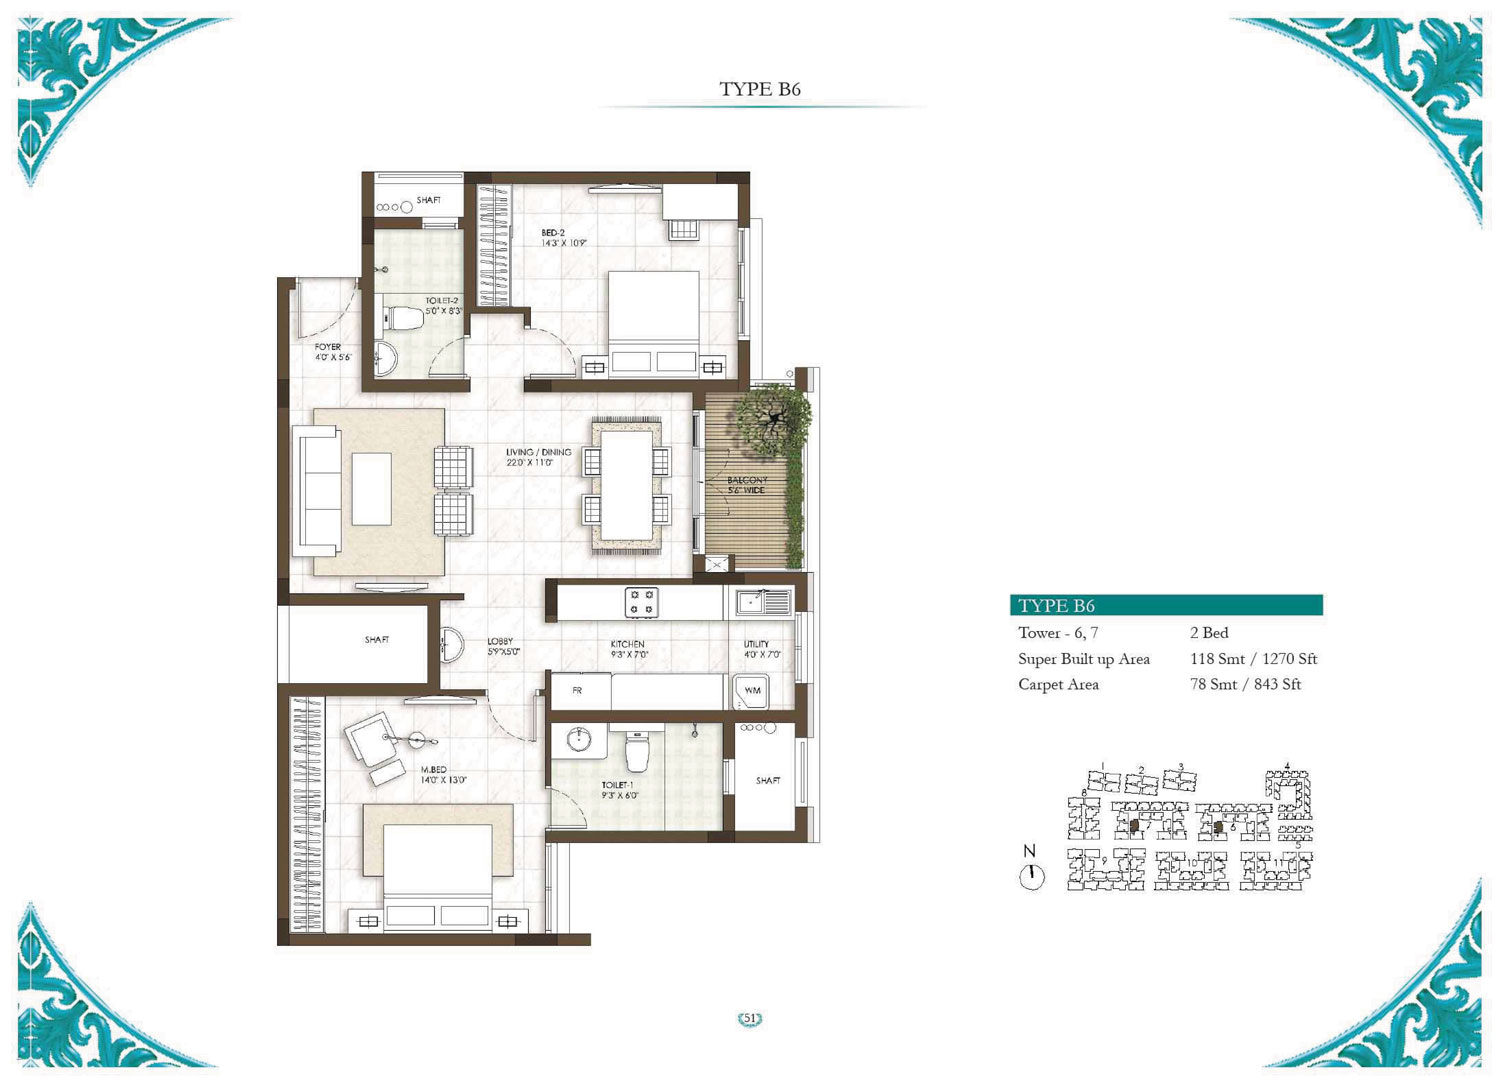 Type B6 - 1 Bed - 1270 Sq Ft